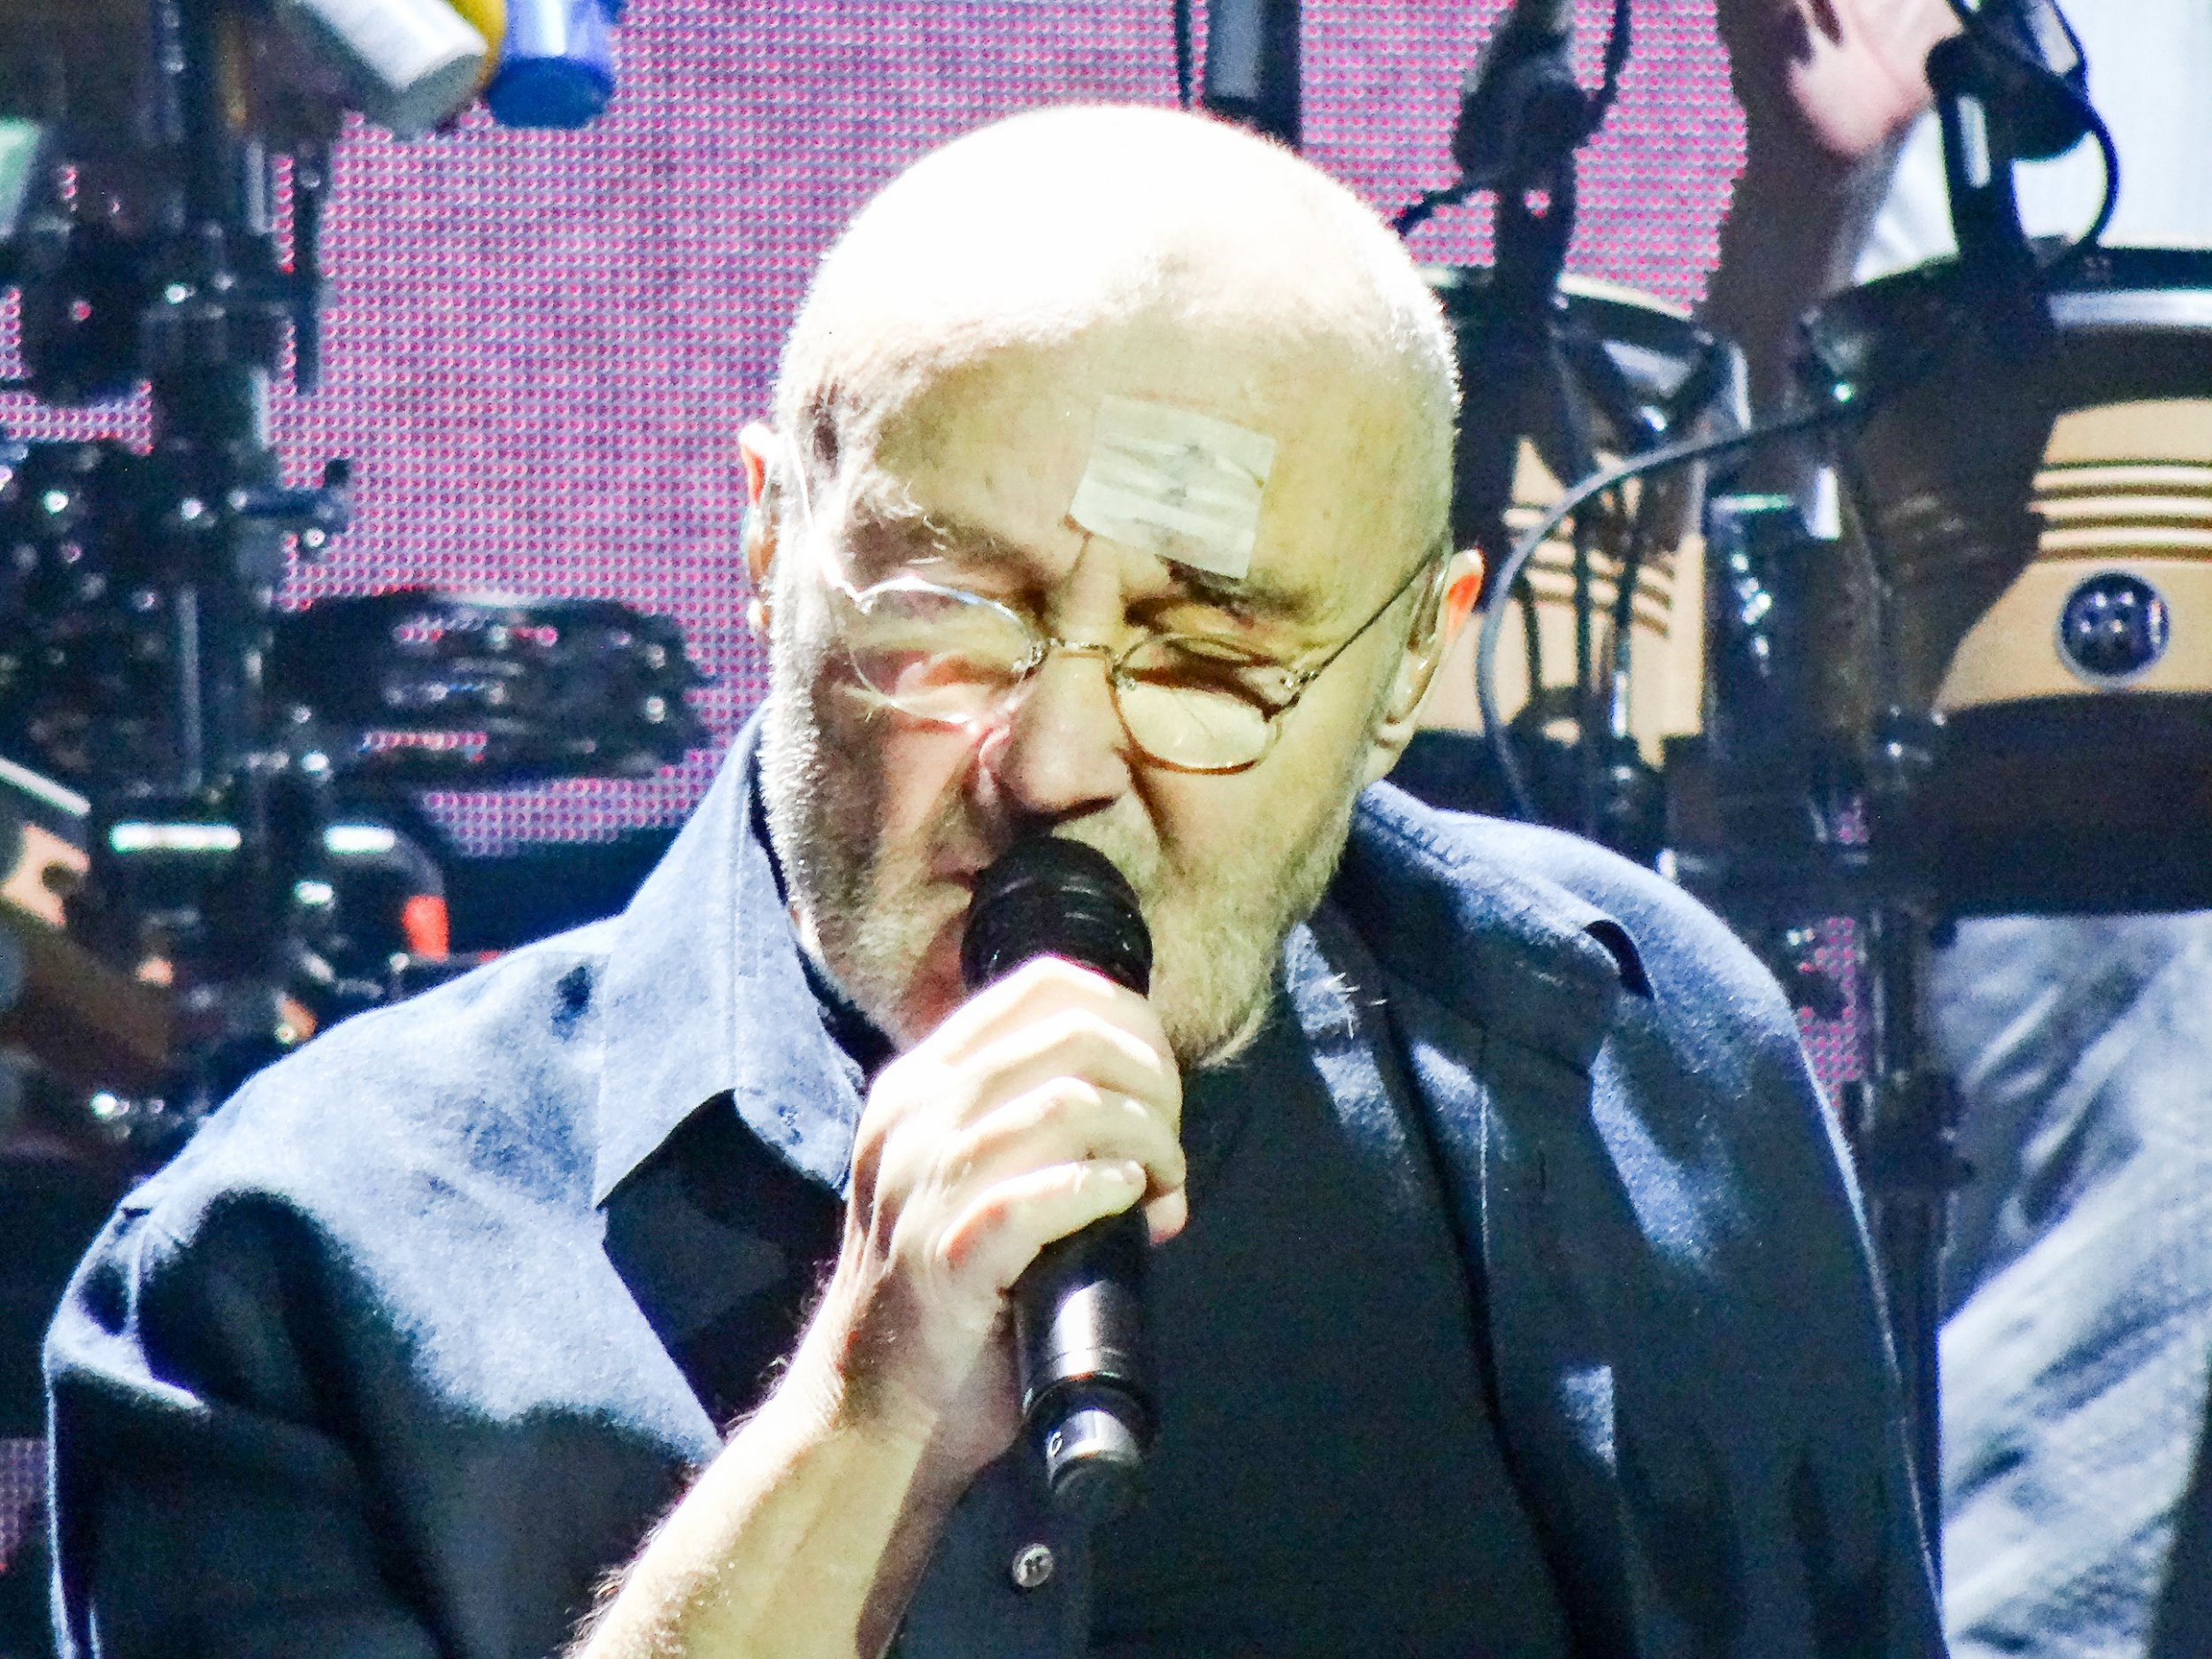 Phil Collins resumes gigs after nasty fall that left him needing stitches